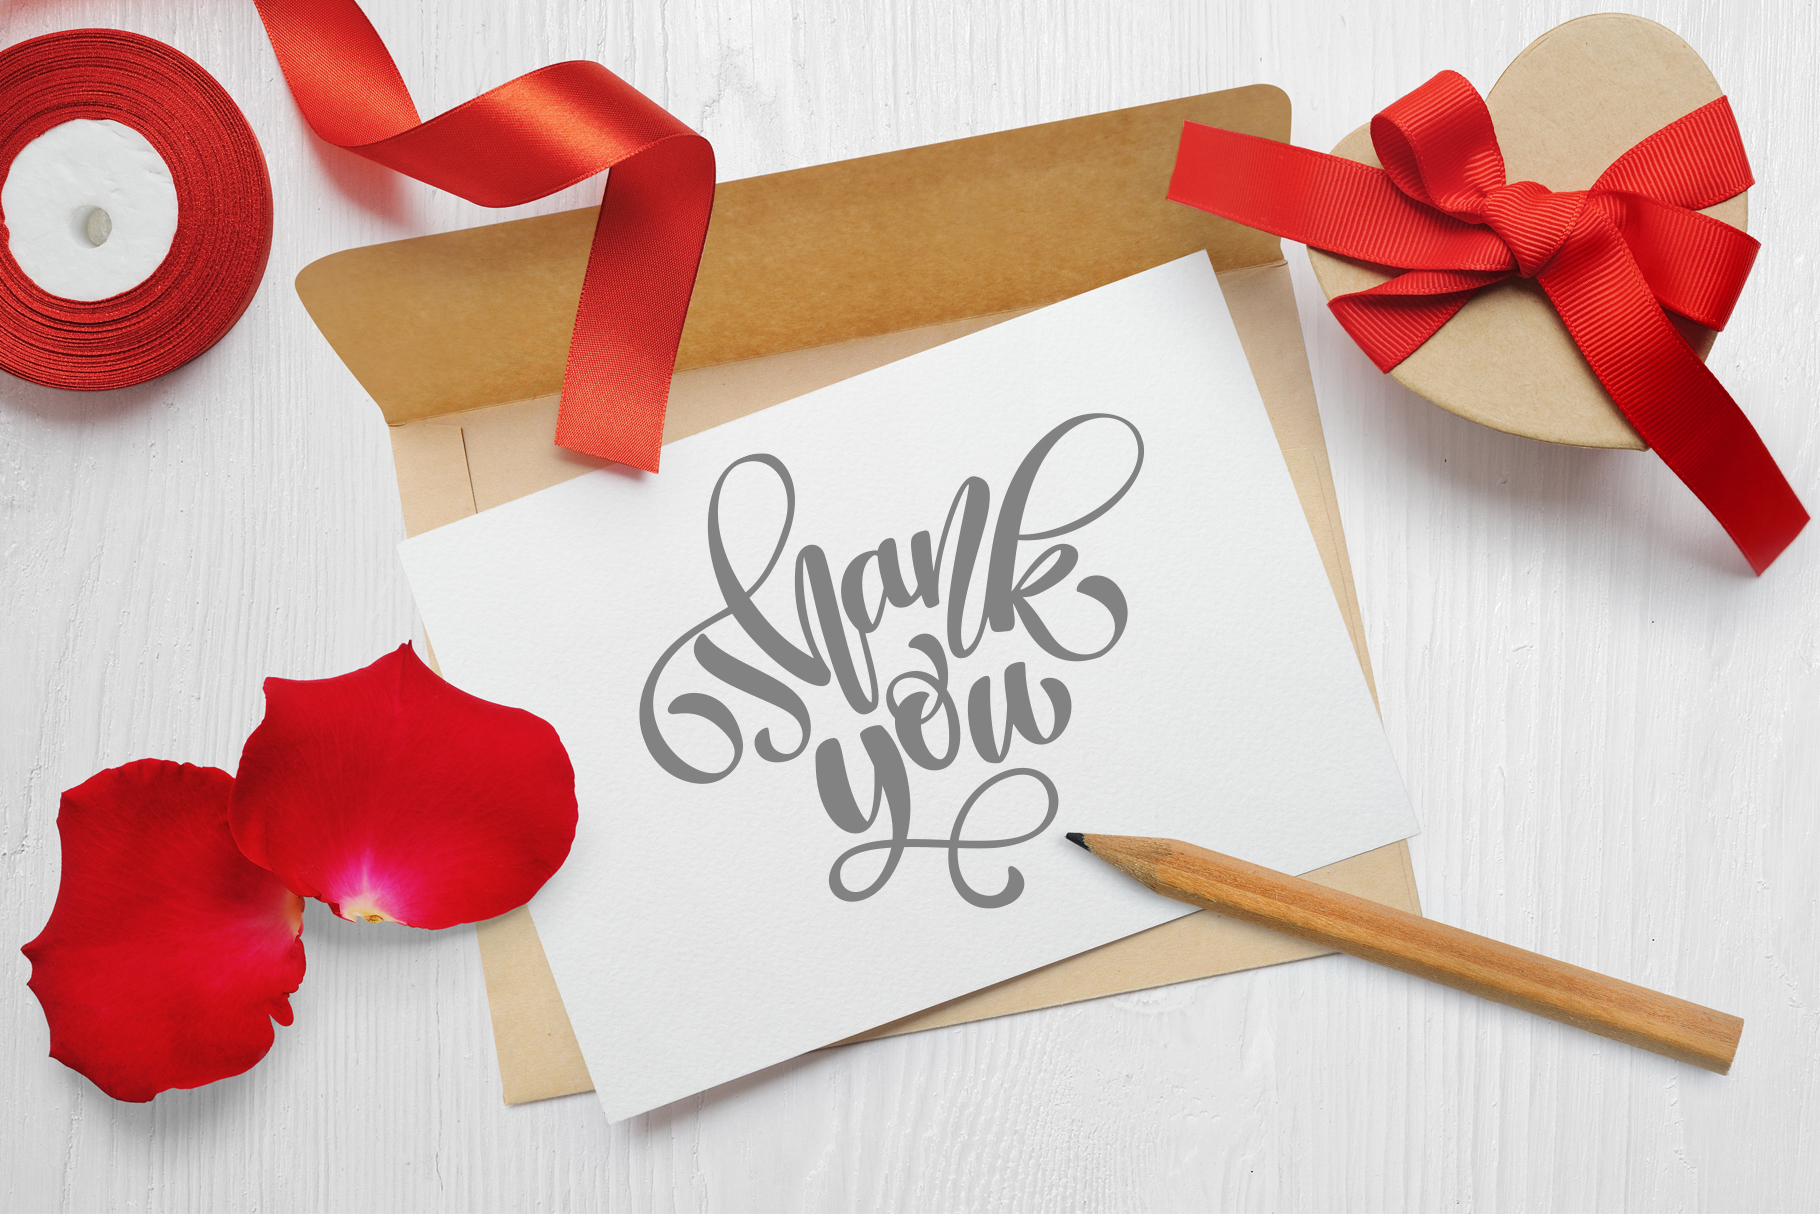 Valentine Mock Up Scene Creator Graphic Objects By Happy Letters - Image 4